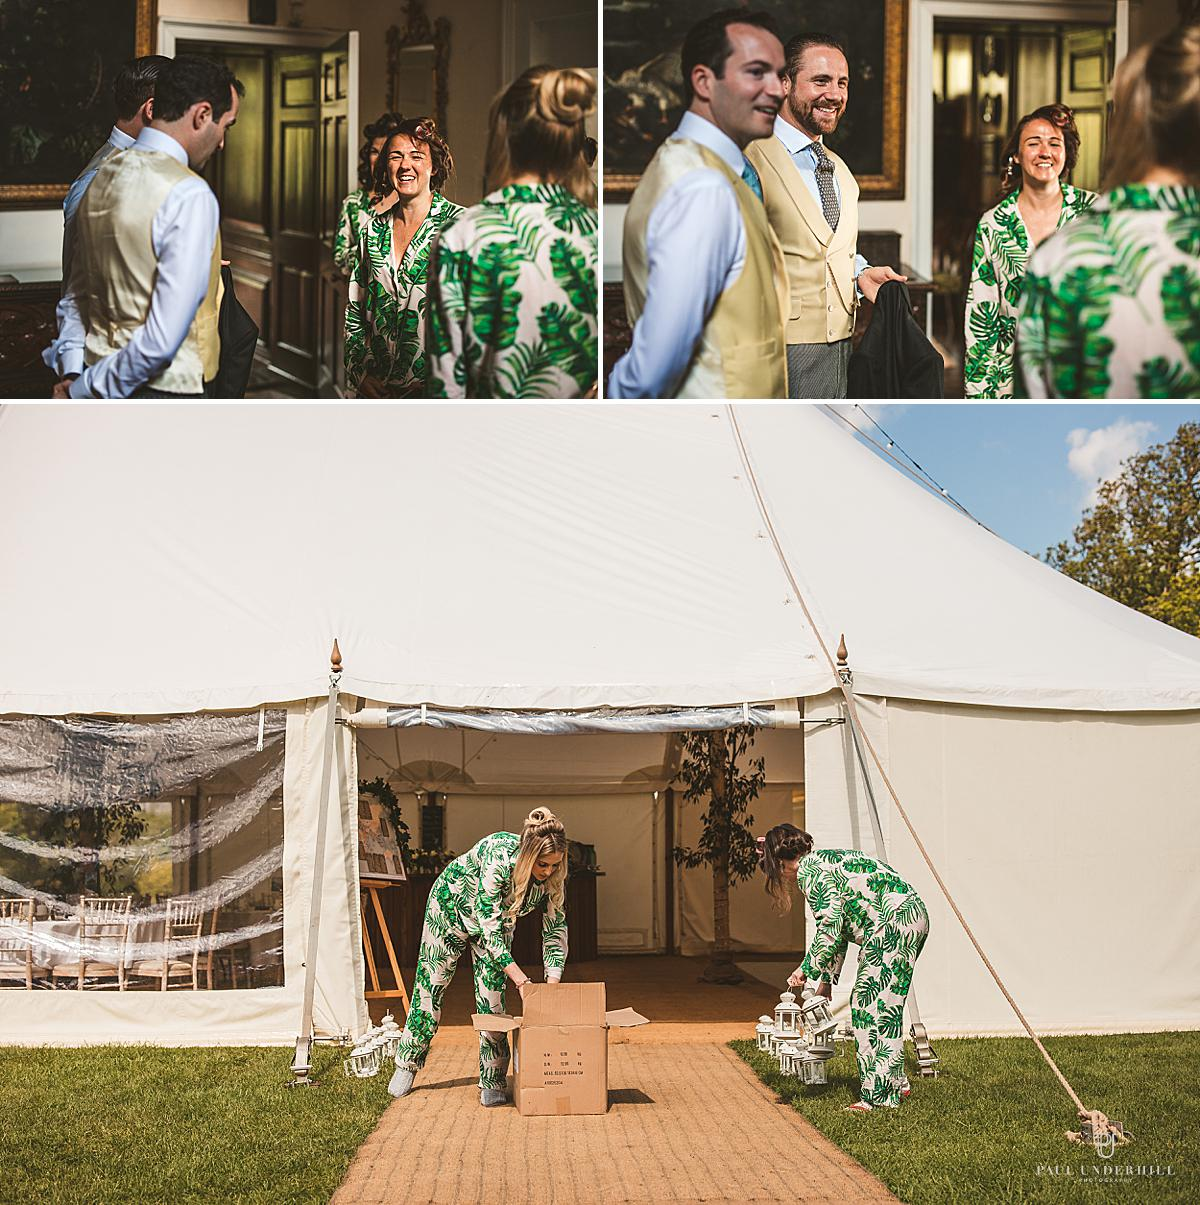 Weddings Smedmore House Dorset